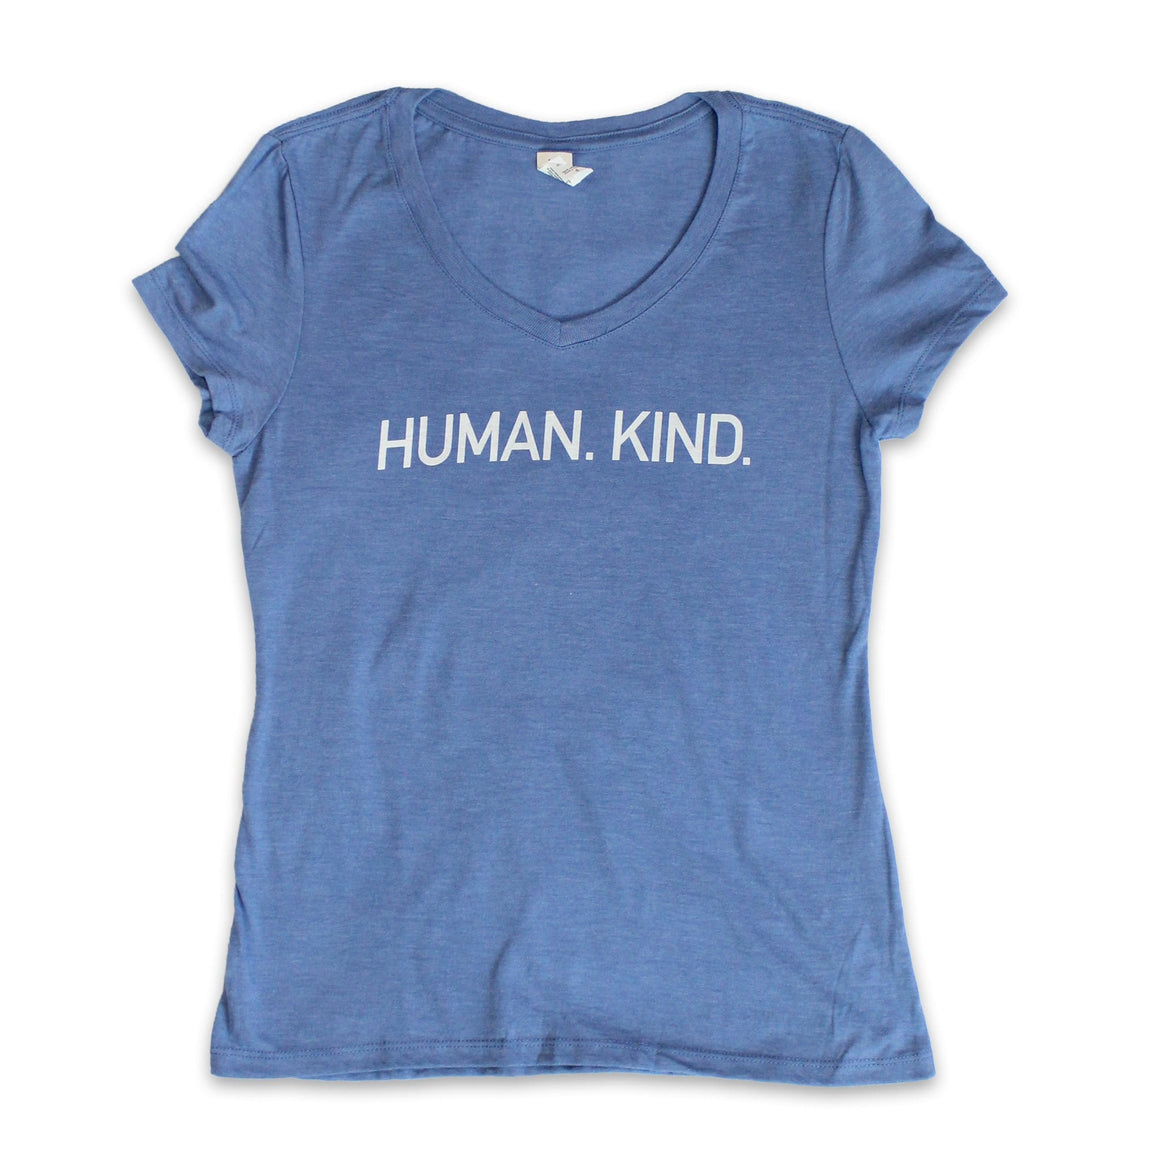 Women's Light Blue V-Neck Tee with White Human.Kind. Print